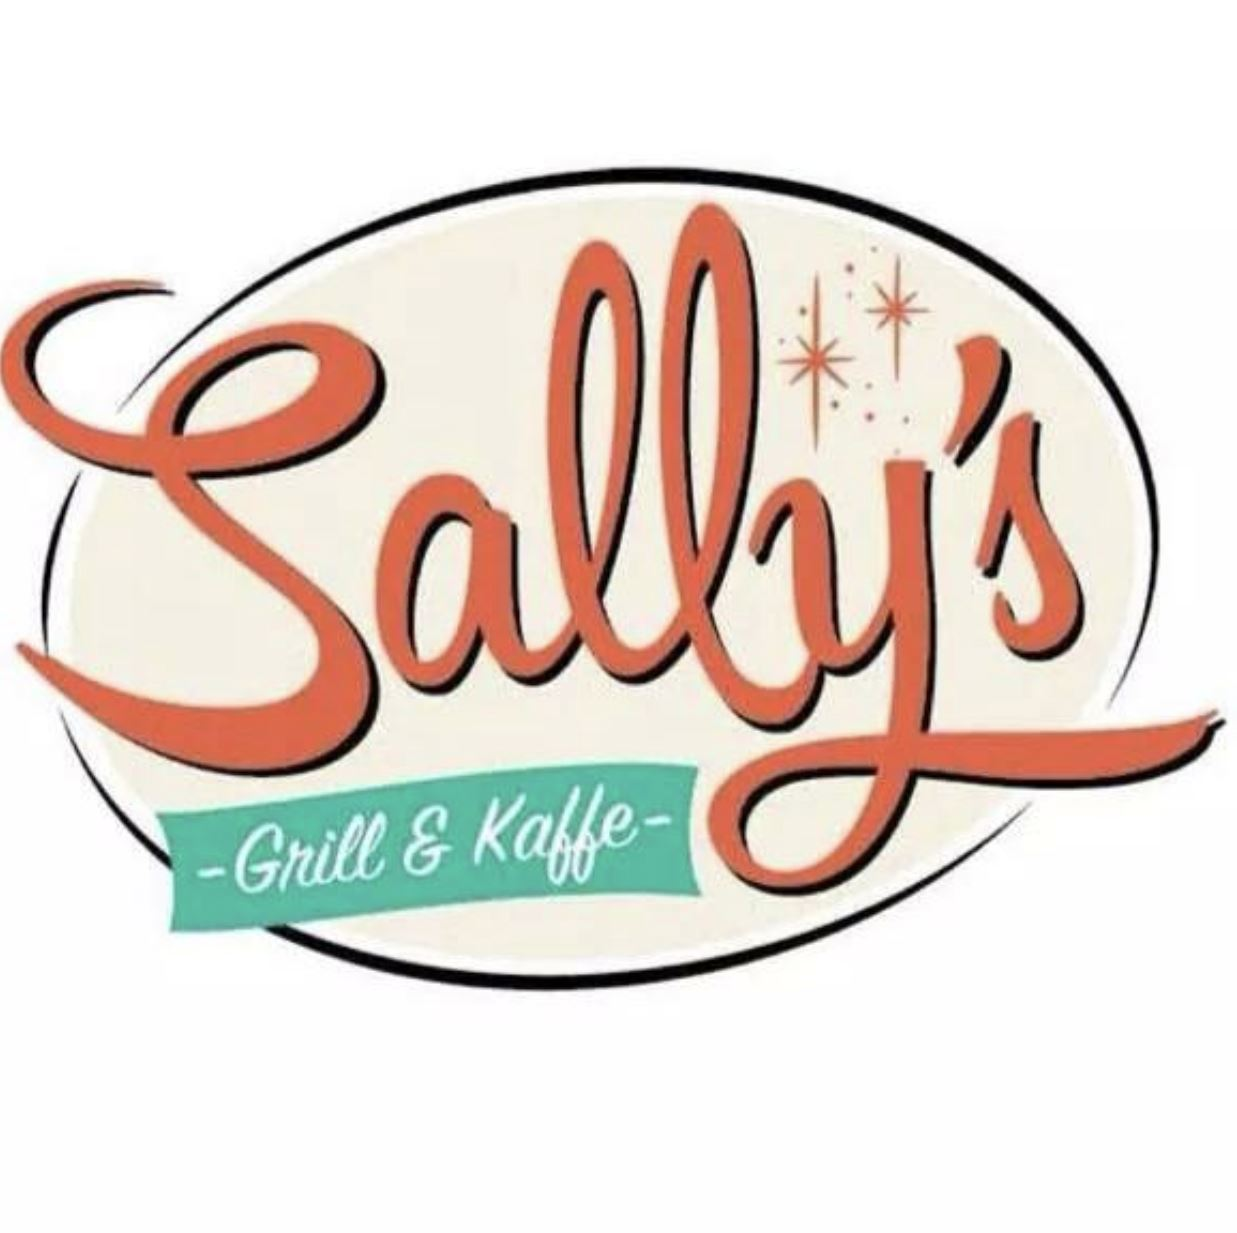 Sally´s Grill